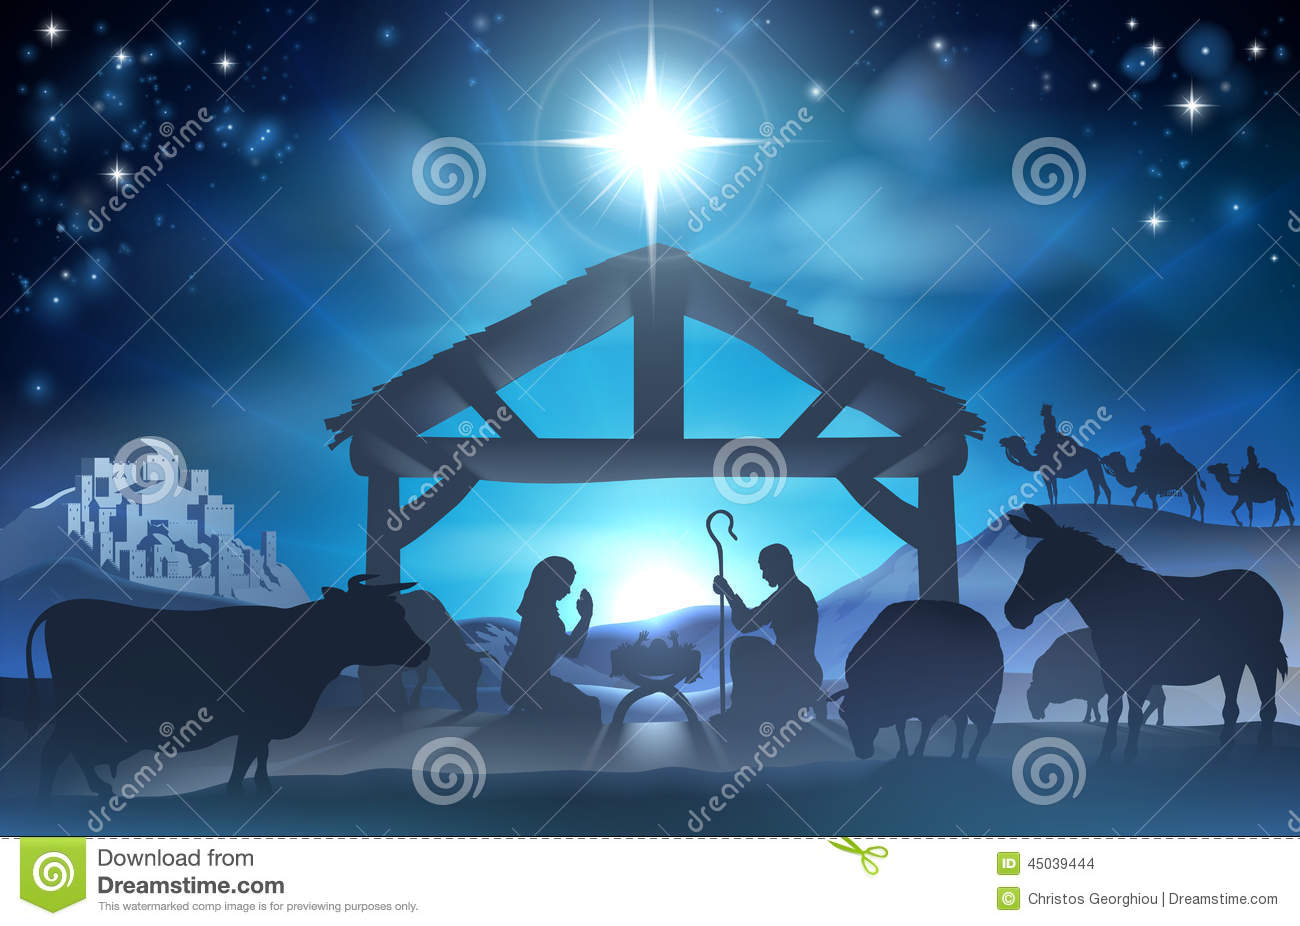 Christmas bethlehem clipart for facebook clip free Christmas bethlehem clipart for facebook - ClipartFox clip free